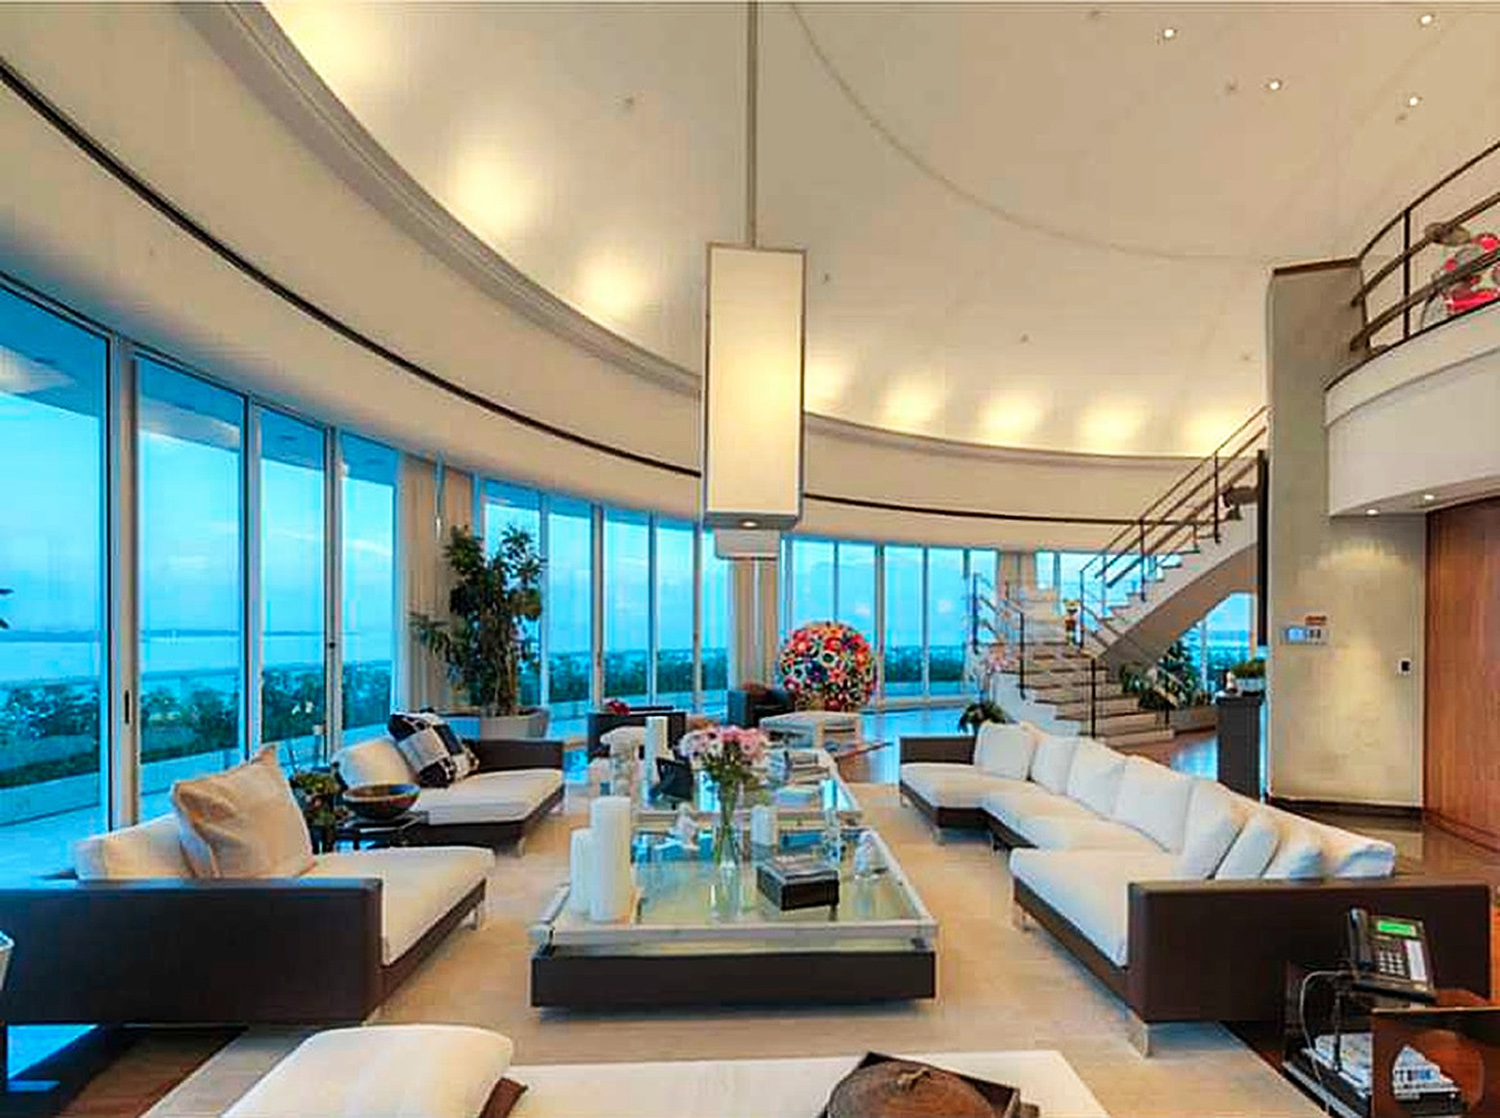 bd521d1703aed Pharrell Williams  Stunning Luxury Miami Penthouse is Up For Grabs—And You  Have to See Inside